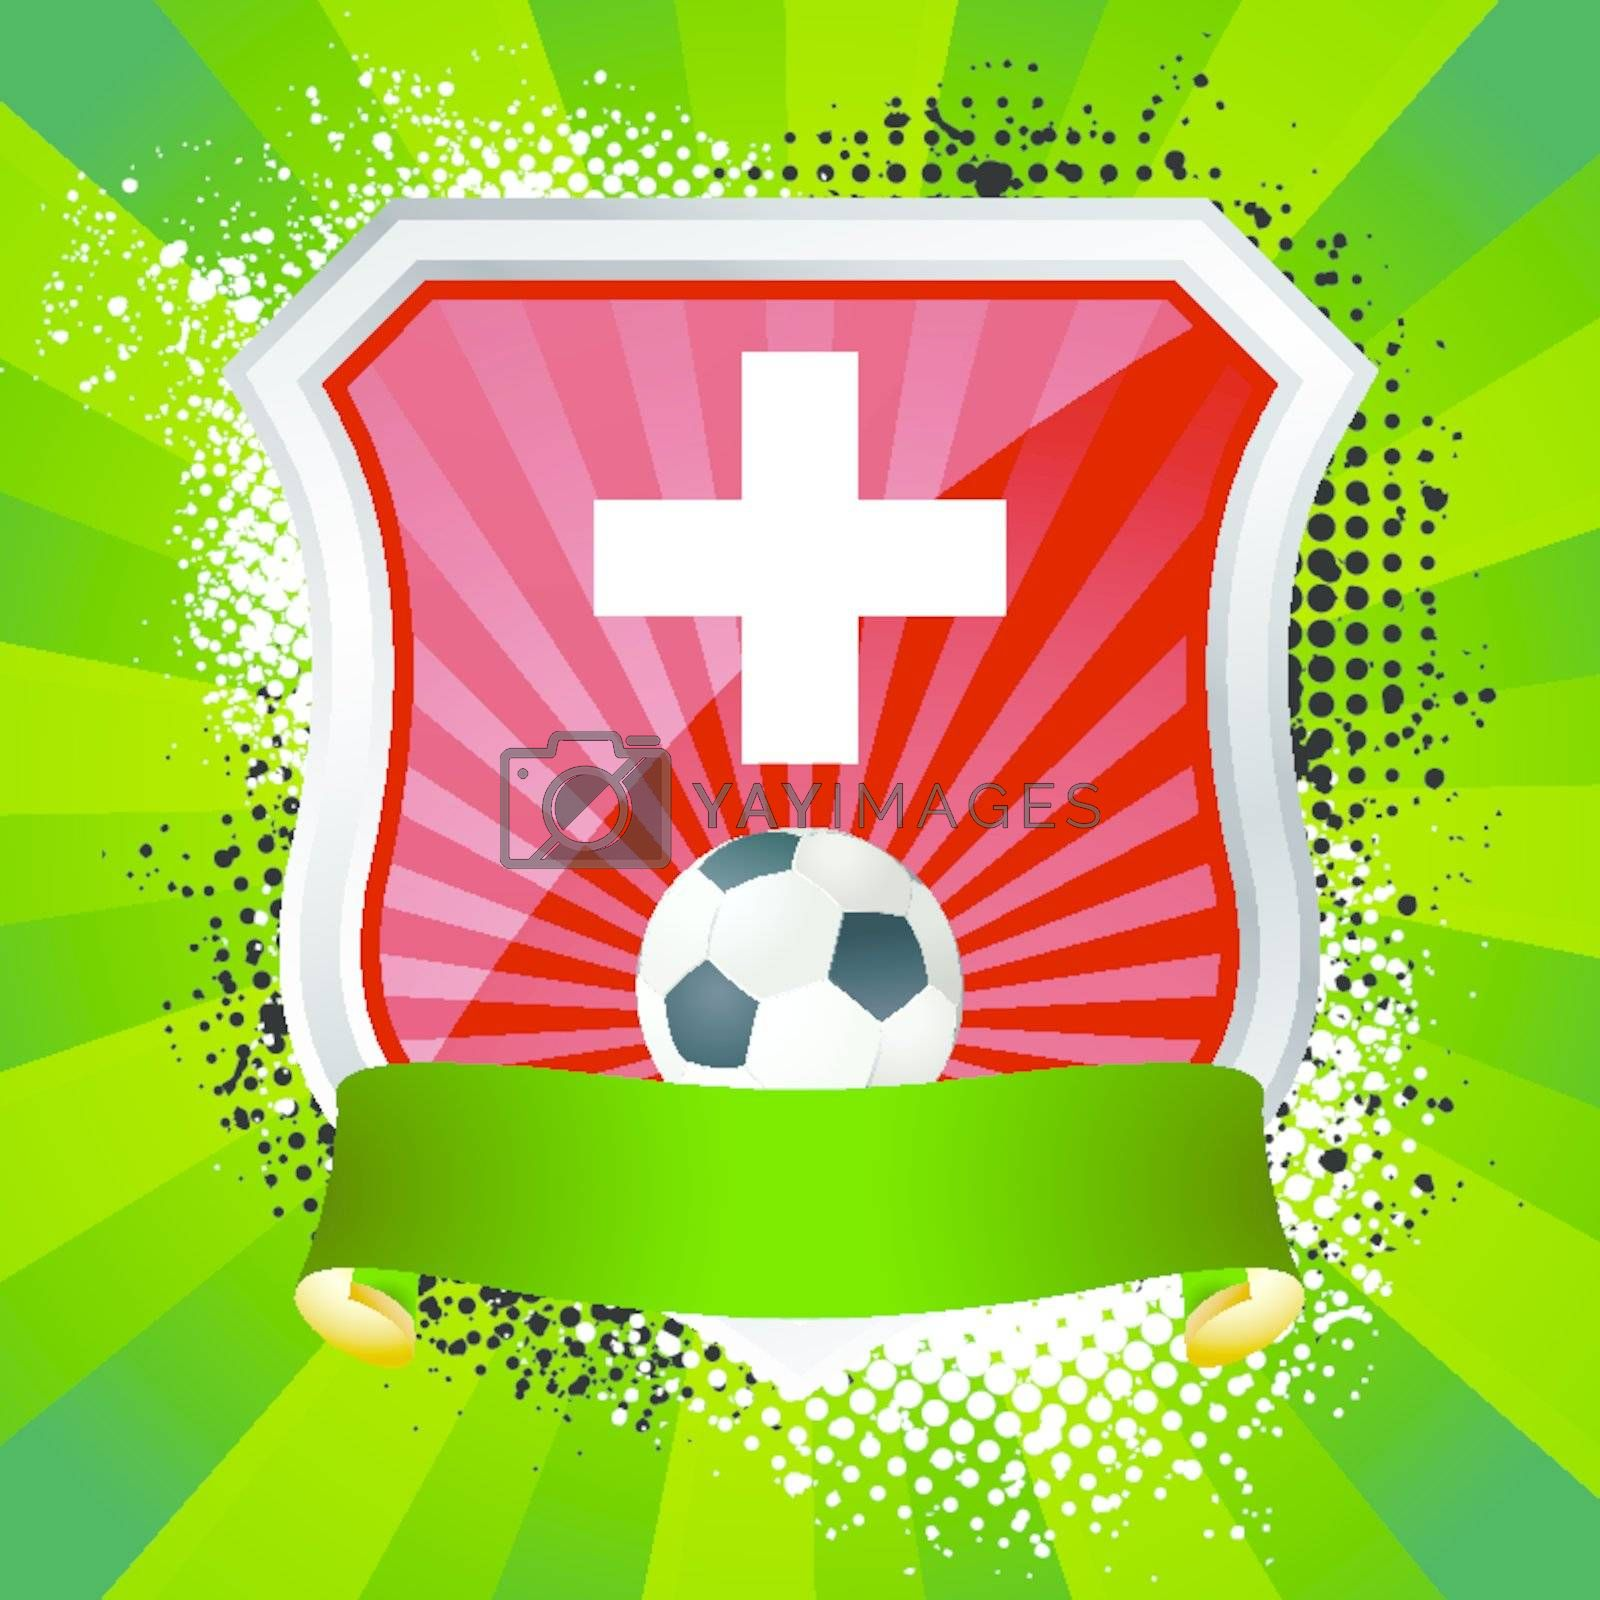 EPS 10. Shiny metal shield on bright background with flag of Switzerland